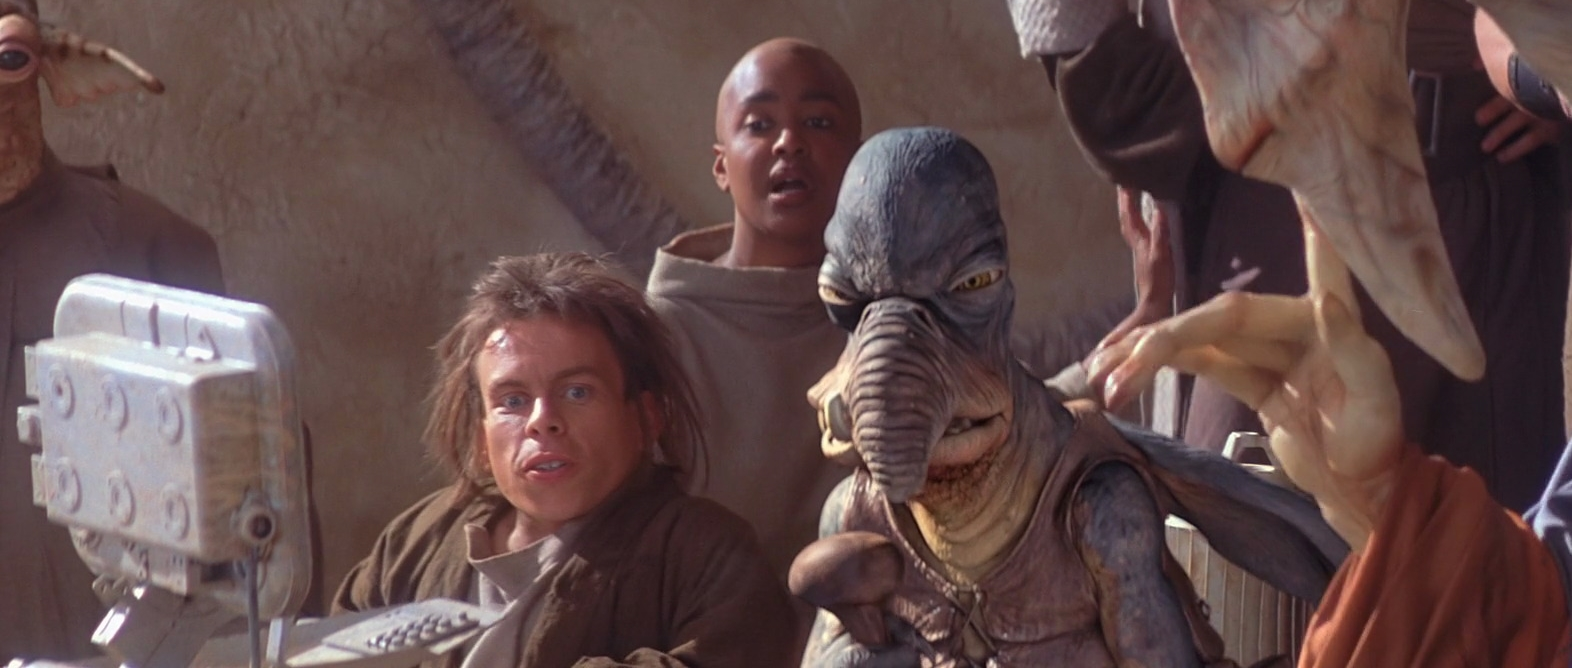 star-wars-actor-warwick-davis-plays-the-same-character-in-solo-that-he-played-in-the-phantom-menace2